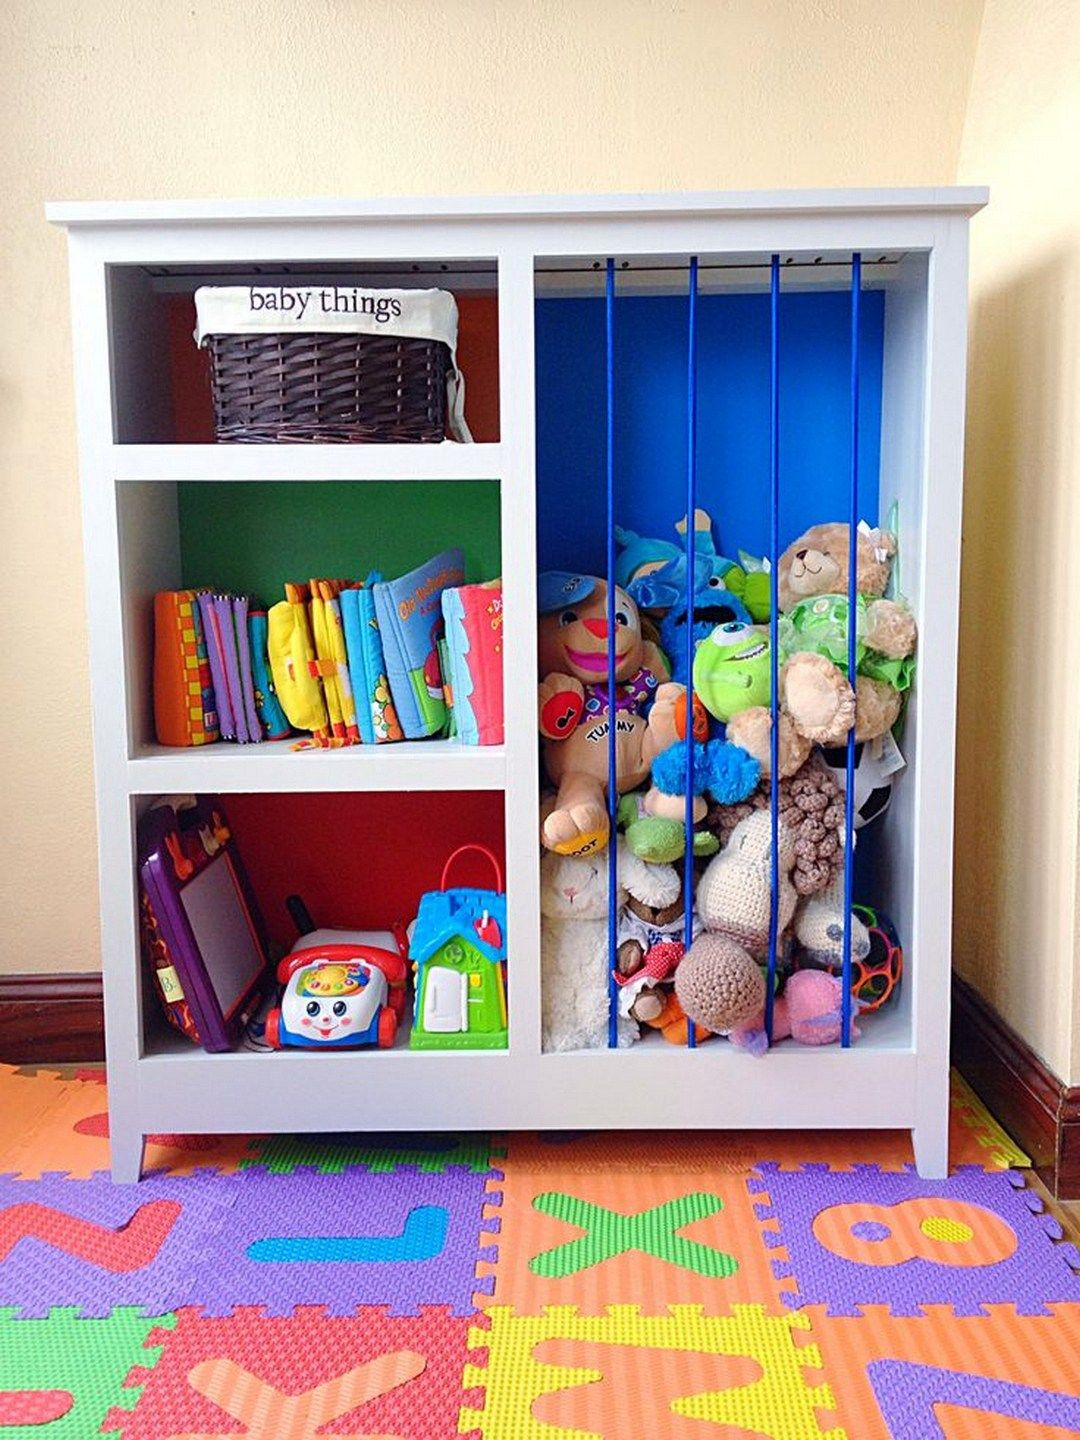 10 creative toy storage tips for your kids kids room pinterest rh pinterest com Storage Room Organization Ideas Storage Room Organization Ideas